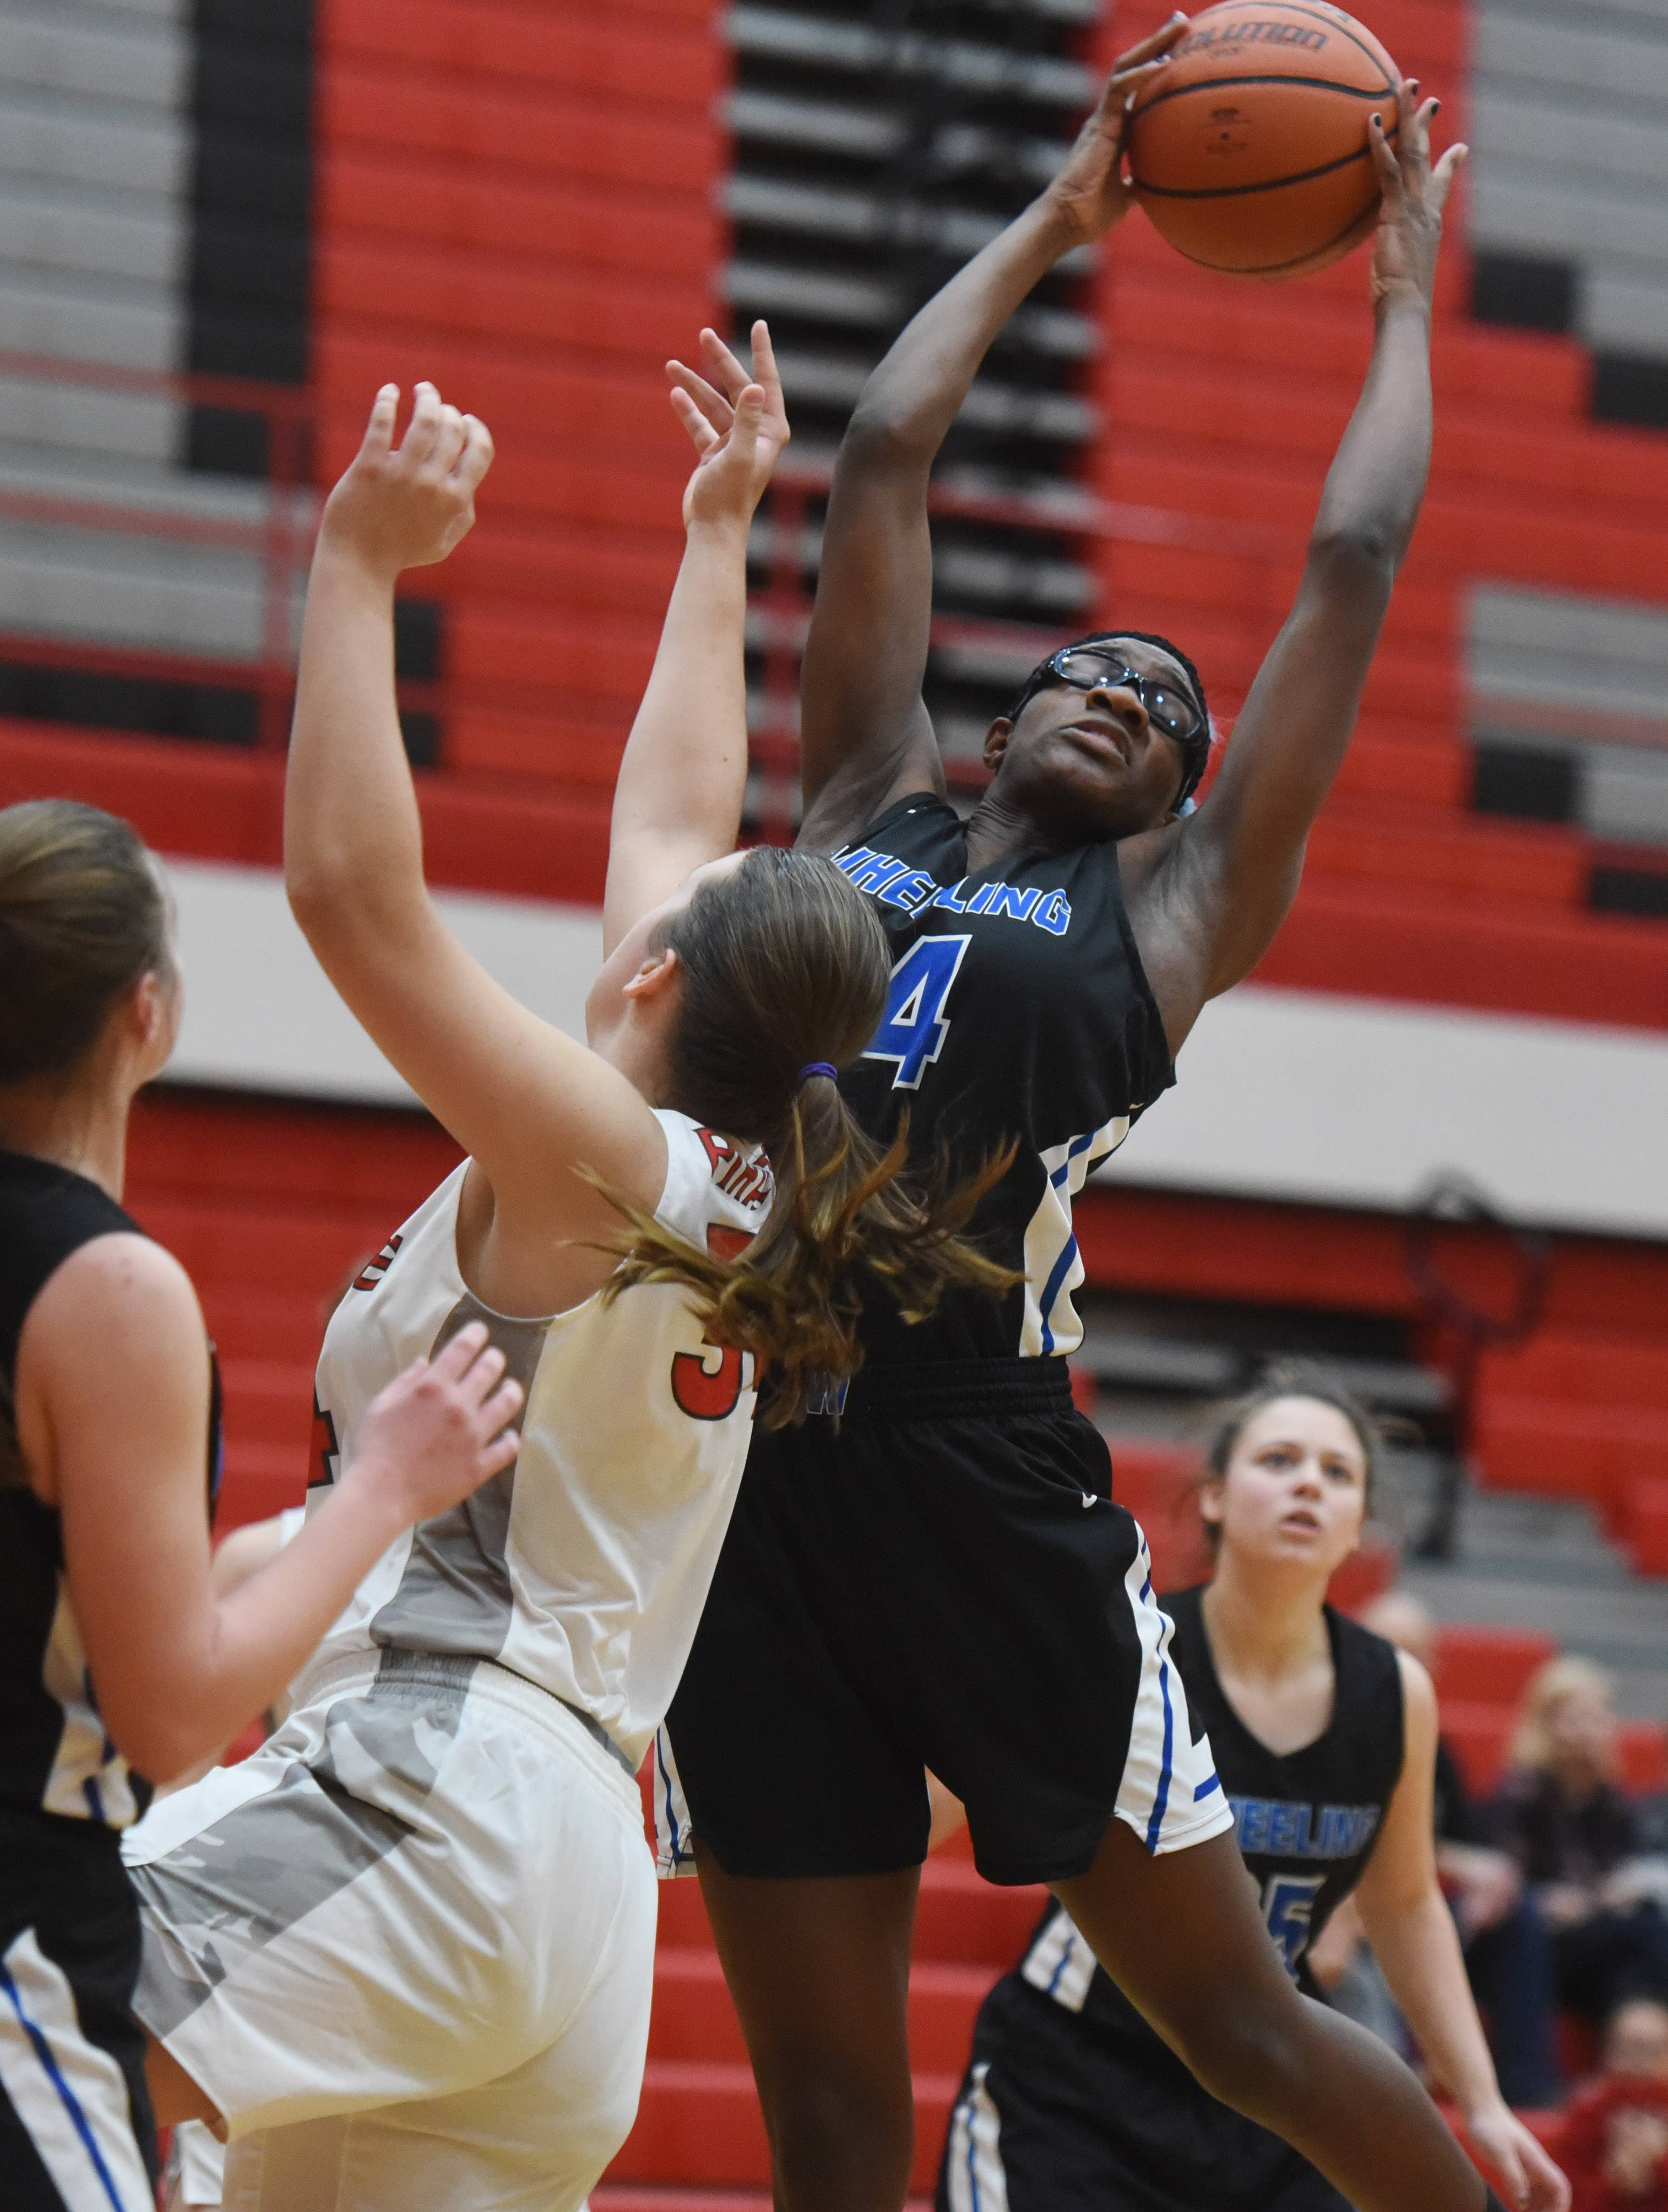 Wheeling's Nosa Igiehon, right, grabs a rebound in front of Palatine's Kayla Miotk during Tuesday's game at Palatine.